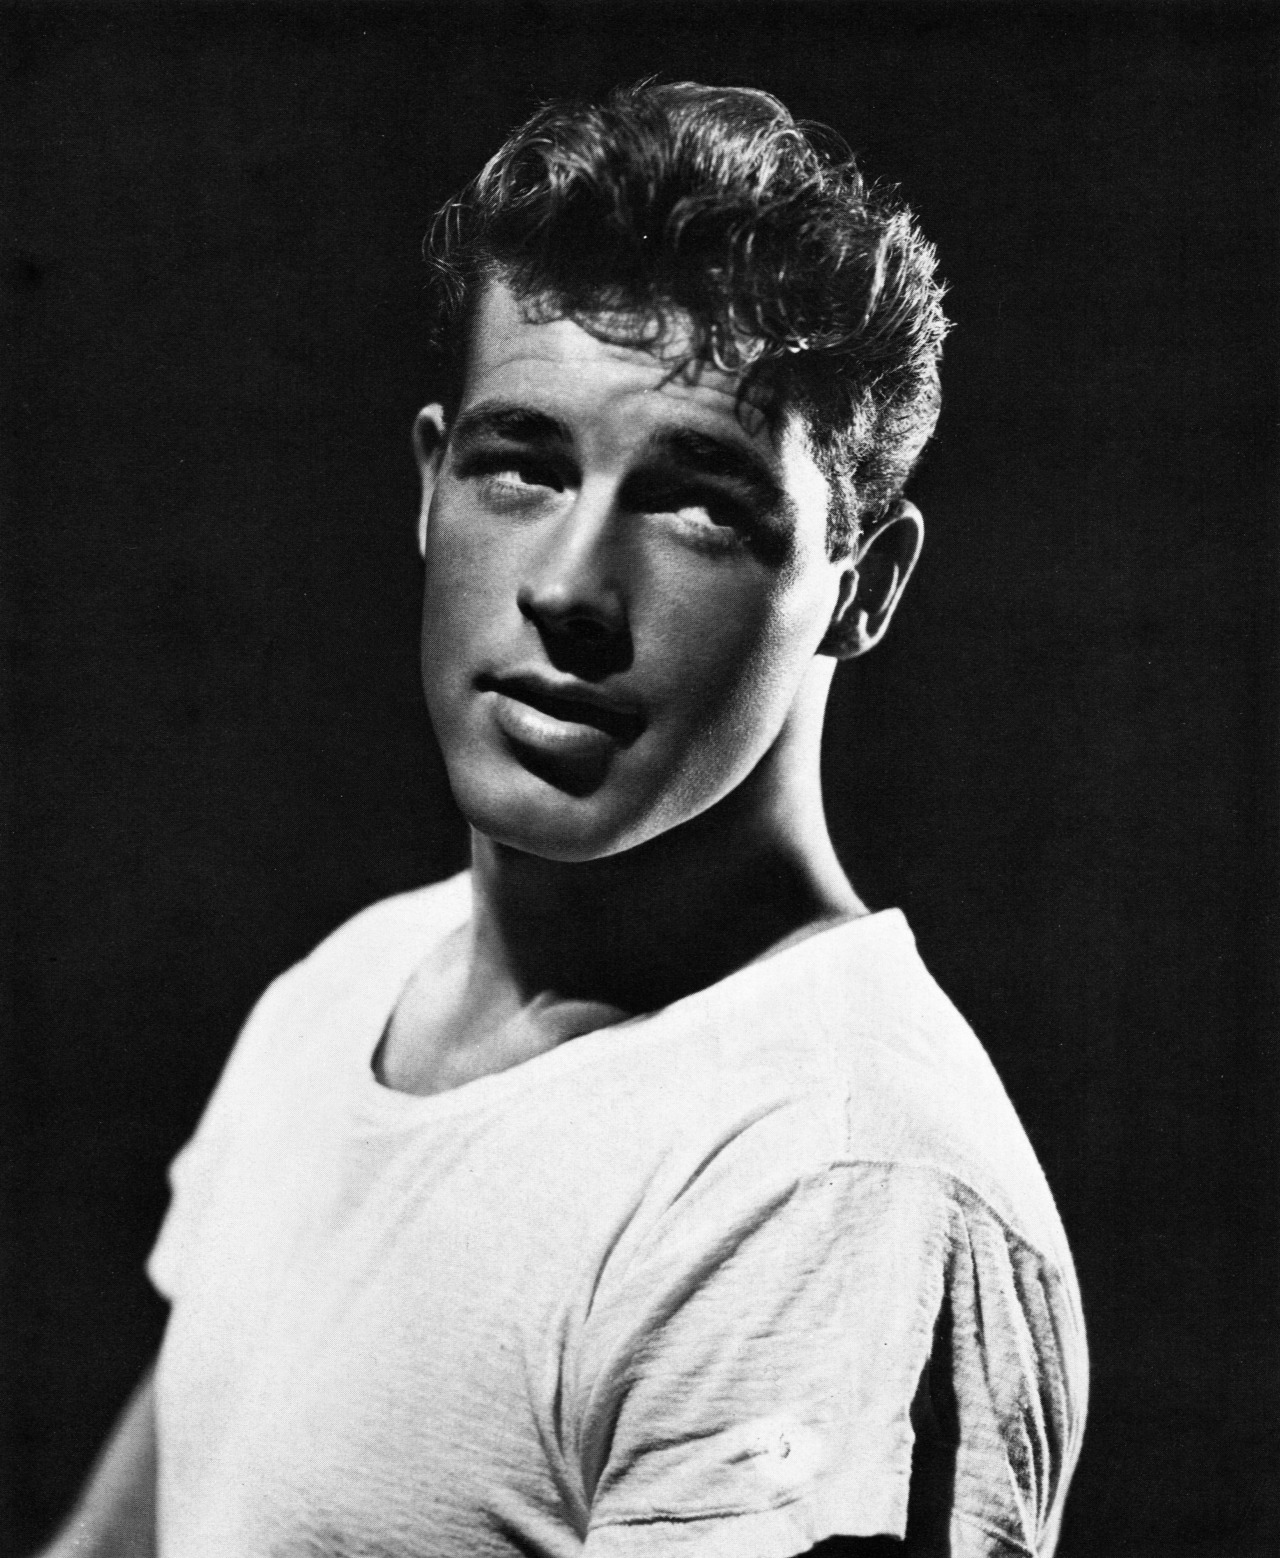 Guy Madison, photograph by John Miehle for United Artists, 1945